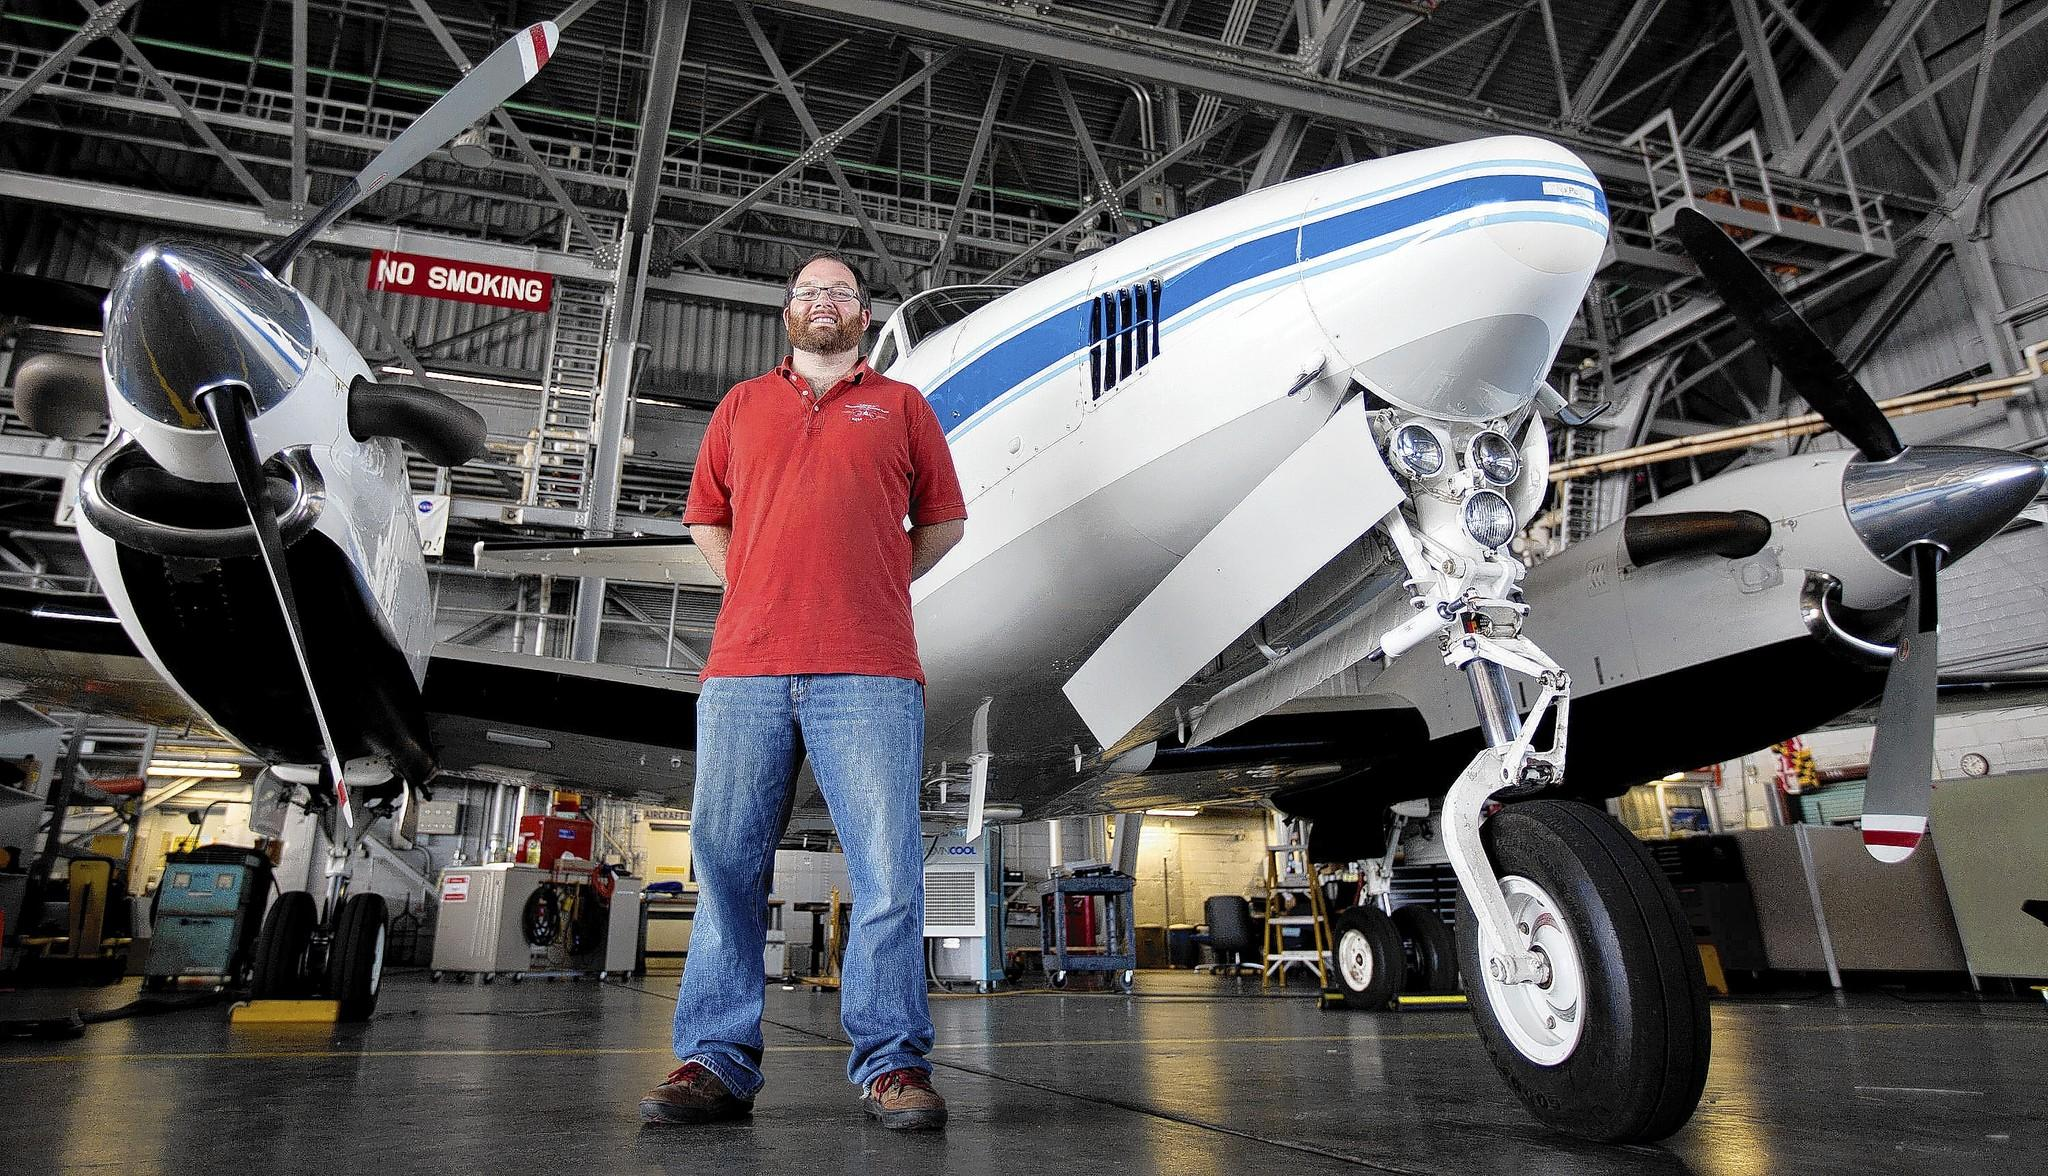 Luke Ziemba, an aerosols scientist at NASA Langley, stands with a King Air B200 aircraft at the NASA Langley hangar on Friday. Ziemba recently returned from a flight aboard a P-3 Hurricane Hunter aircraft with the National Oceanic and Atmospheric Administration to fly through Hurricane Cristobal to study how aerosols can afffect storms.